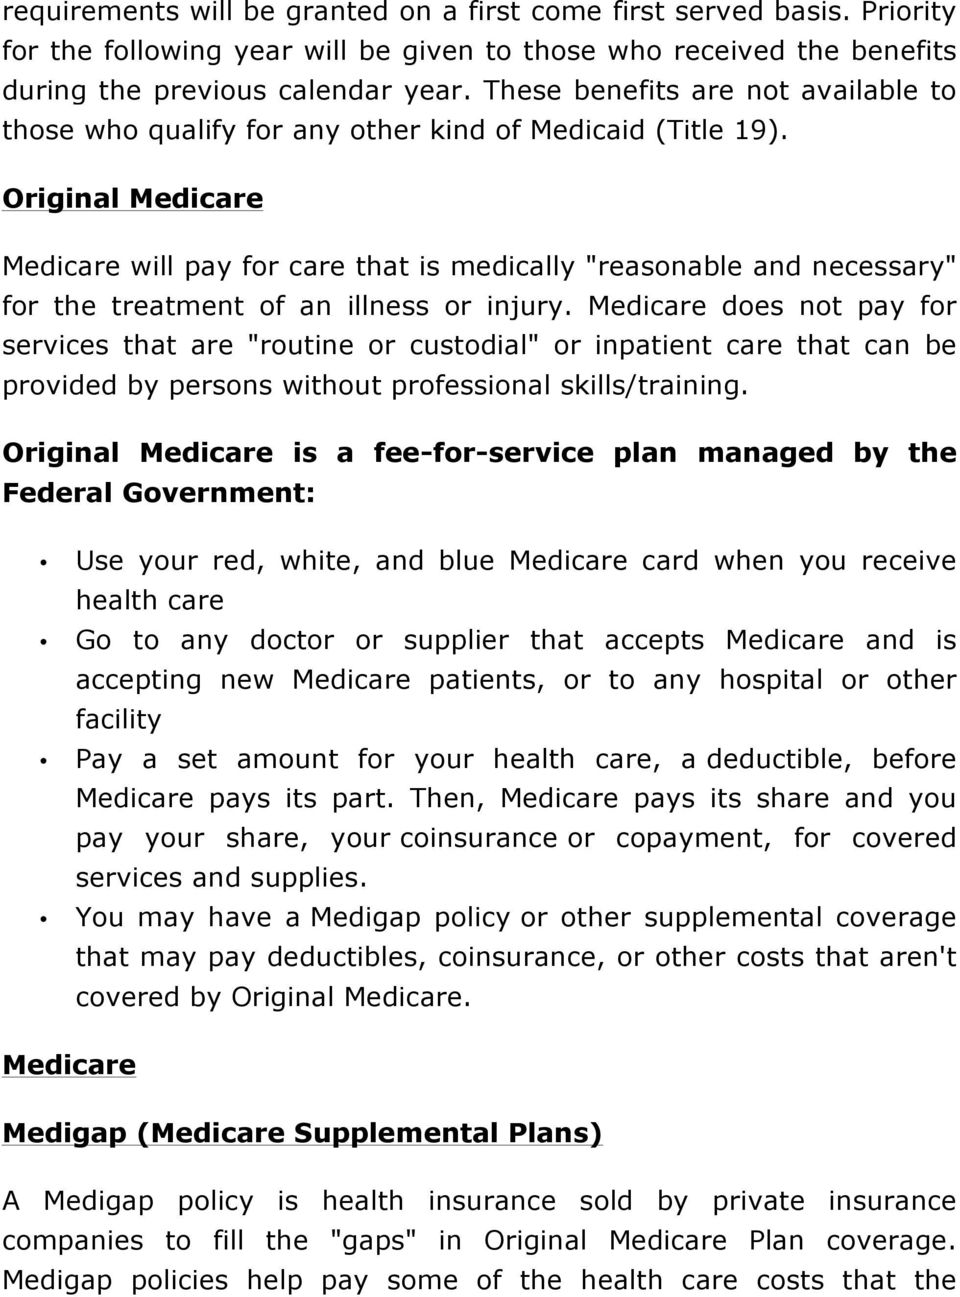 "Original Medicare Medicare will pay for care that is medically ""reasonable and necessary"" for the treatment of an illness or injury."